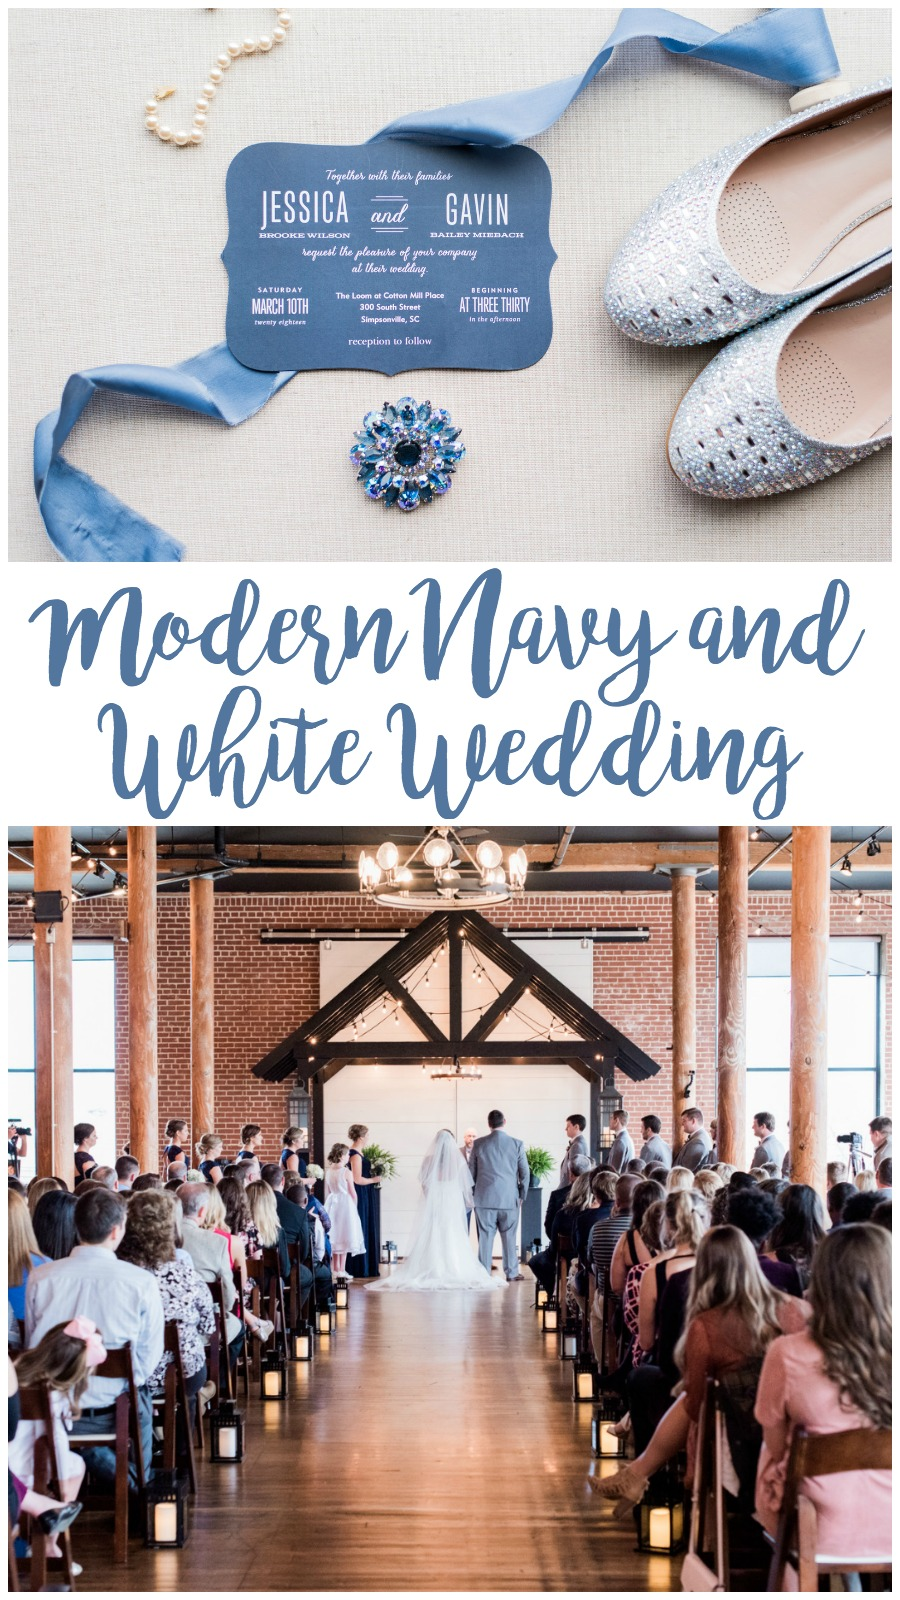 Jessica and Gavin: Modern Urban Wedding at the Loom at Cotton Mill Place | Palmetto State Weddings | Greenville wedding venue | navy and white wedding inspiration